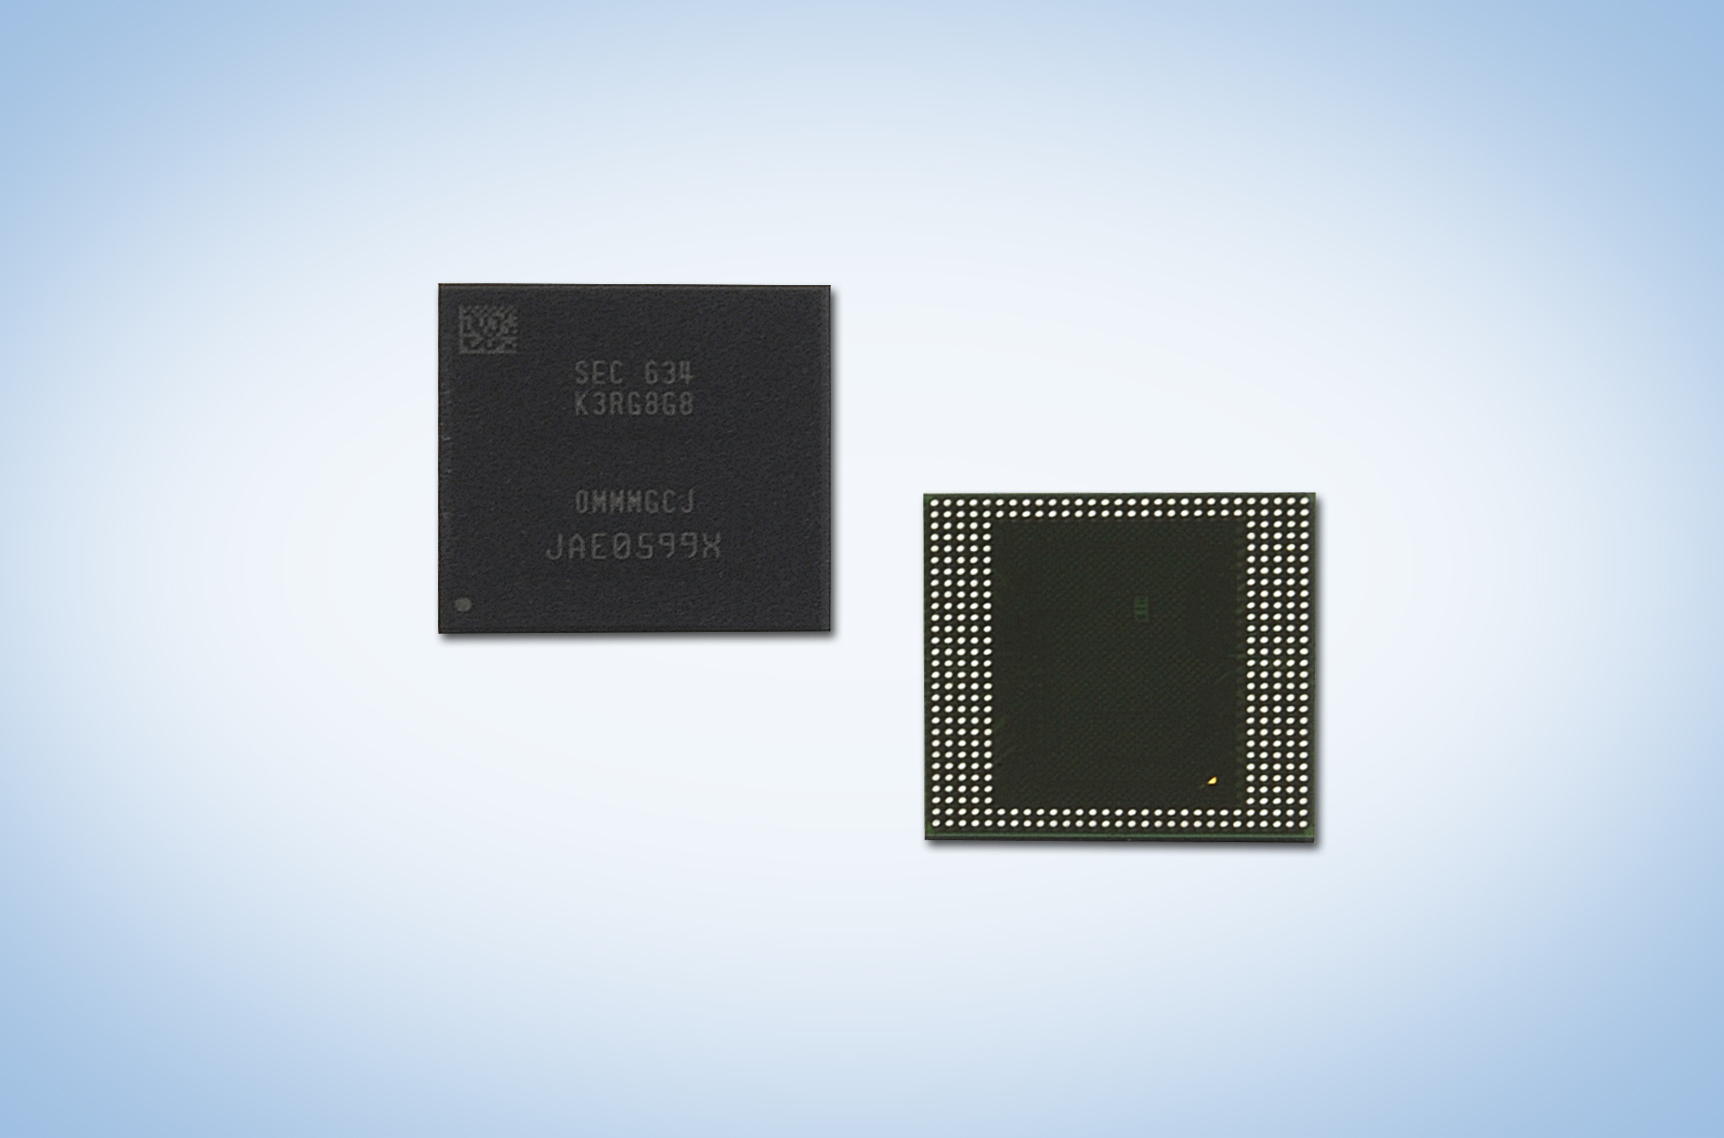 Samsung to unveil Industry's first 8GB LPDDR4 DRAM package